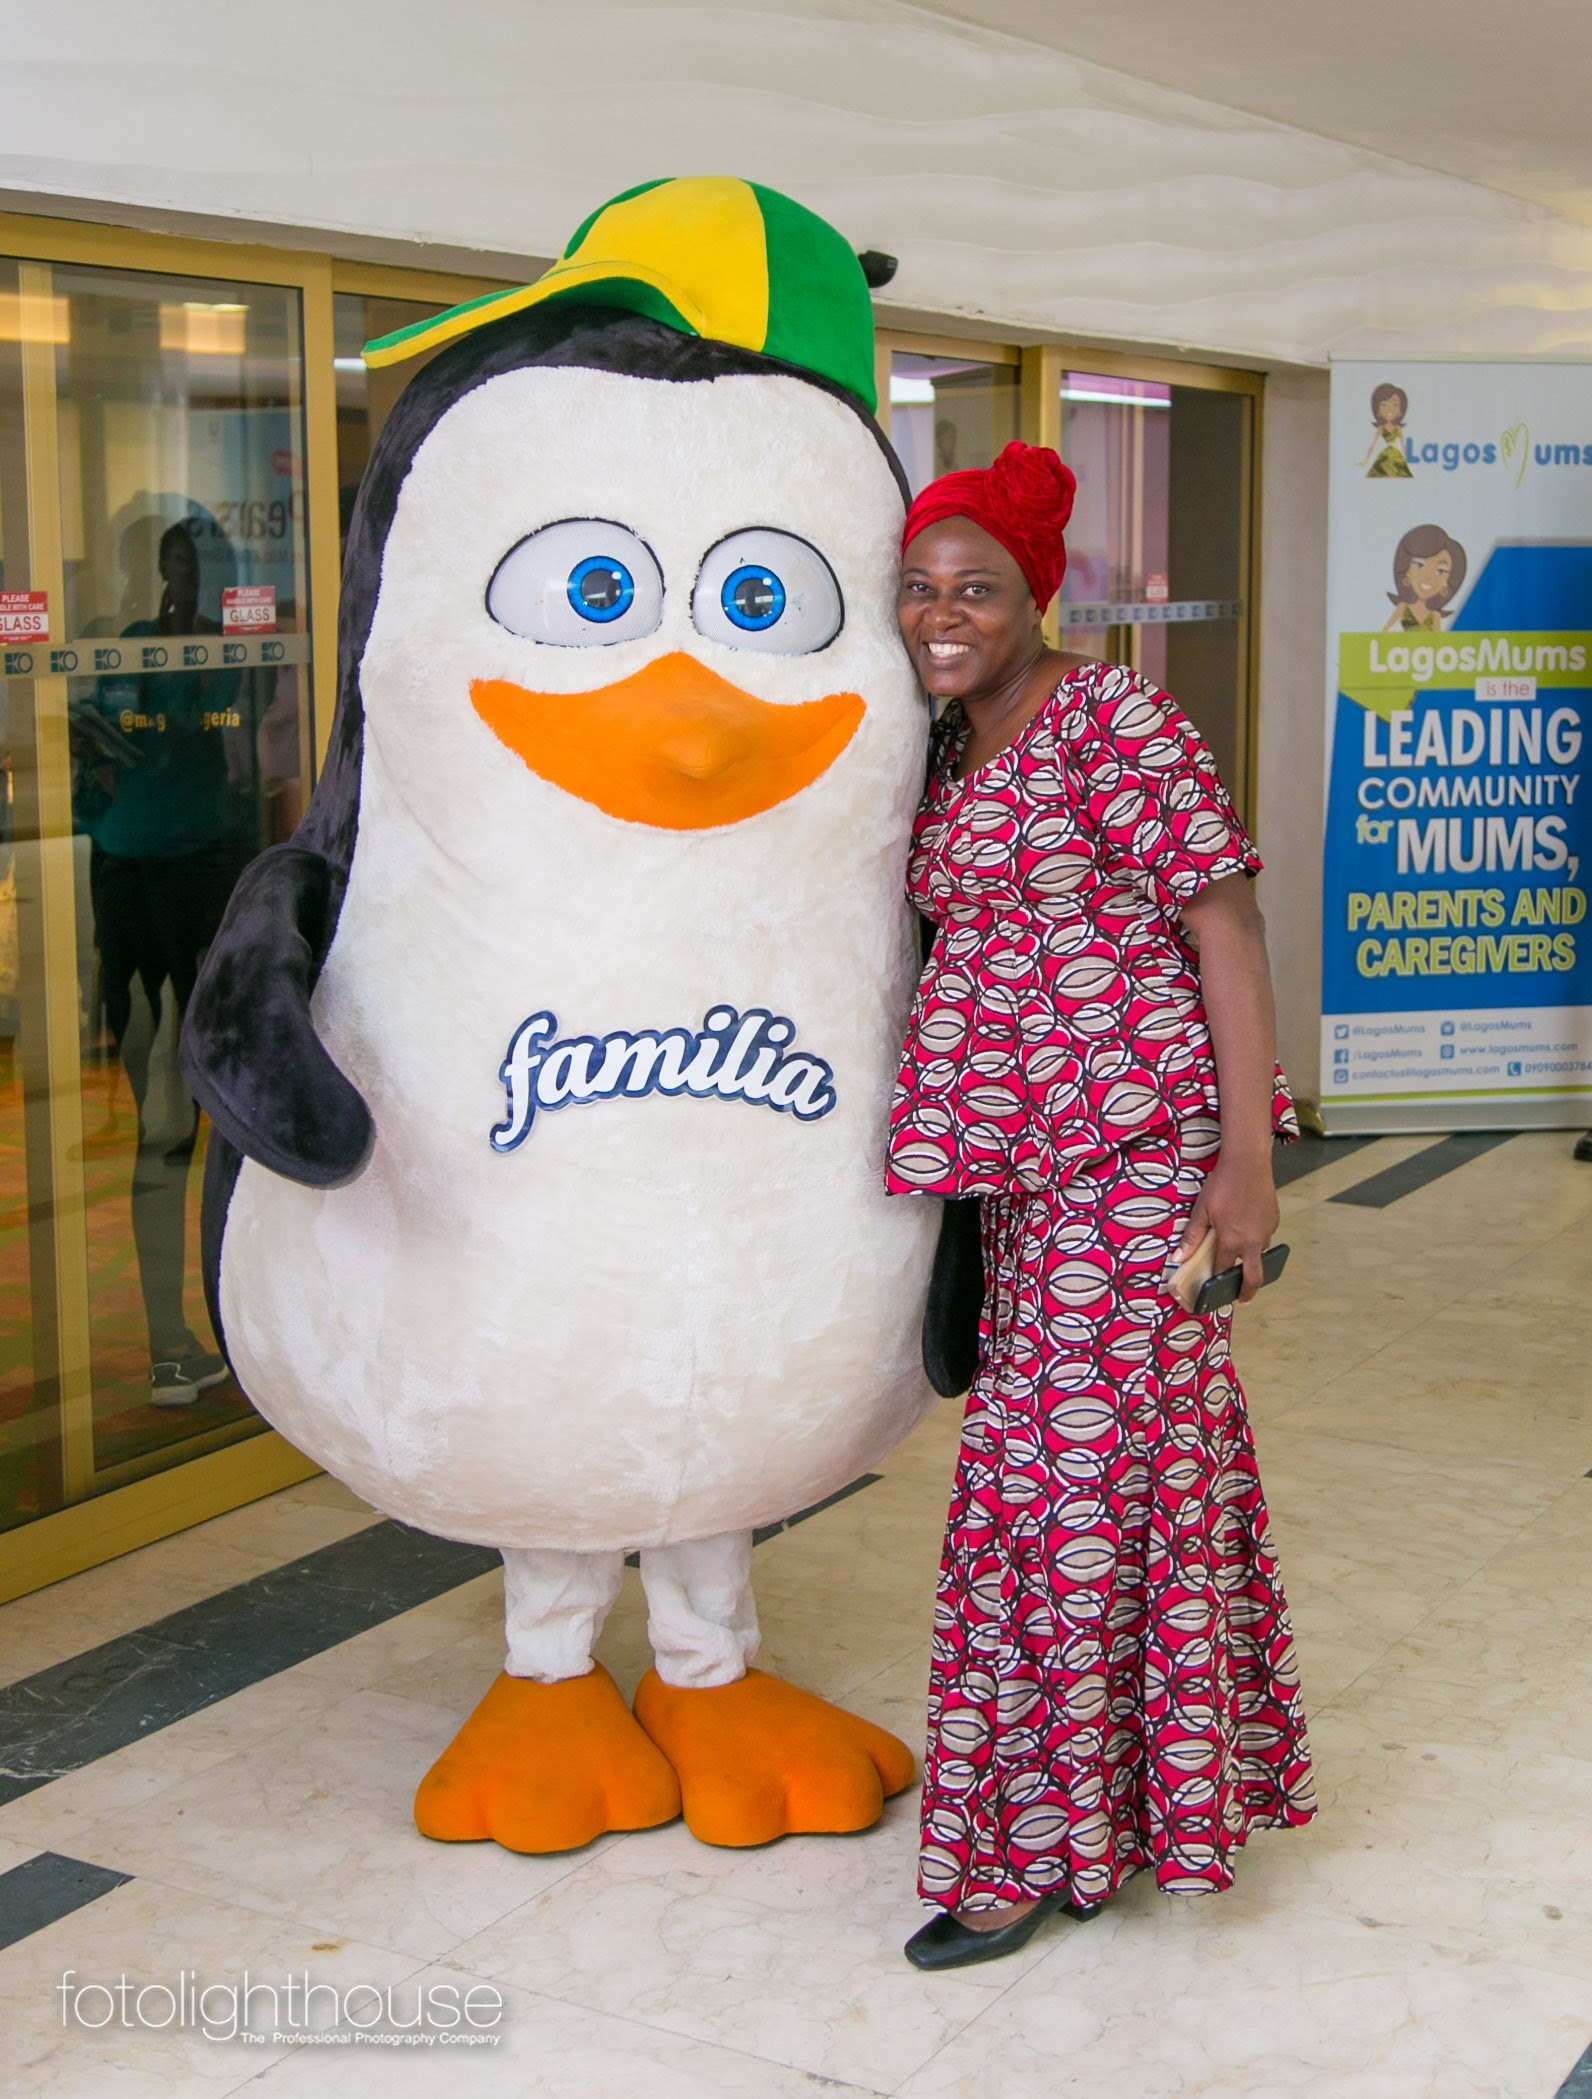 #Throwback To LagosMums 4th Annual Parenting Conference and Exhibition 2017